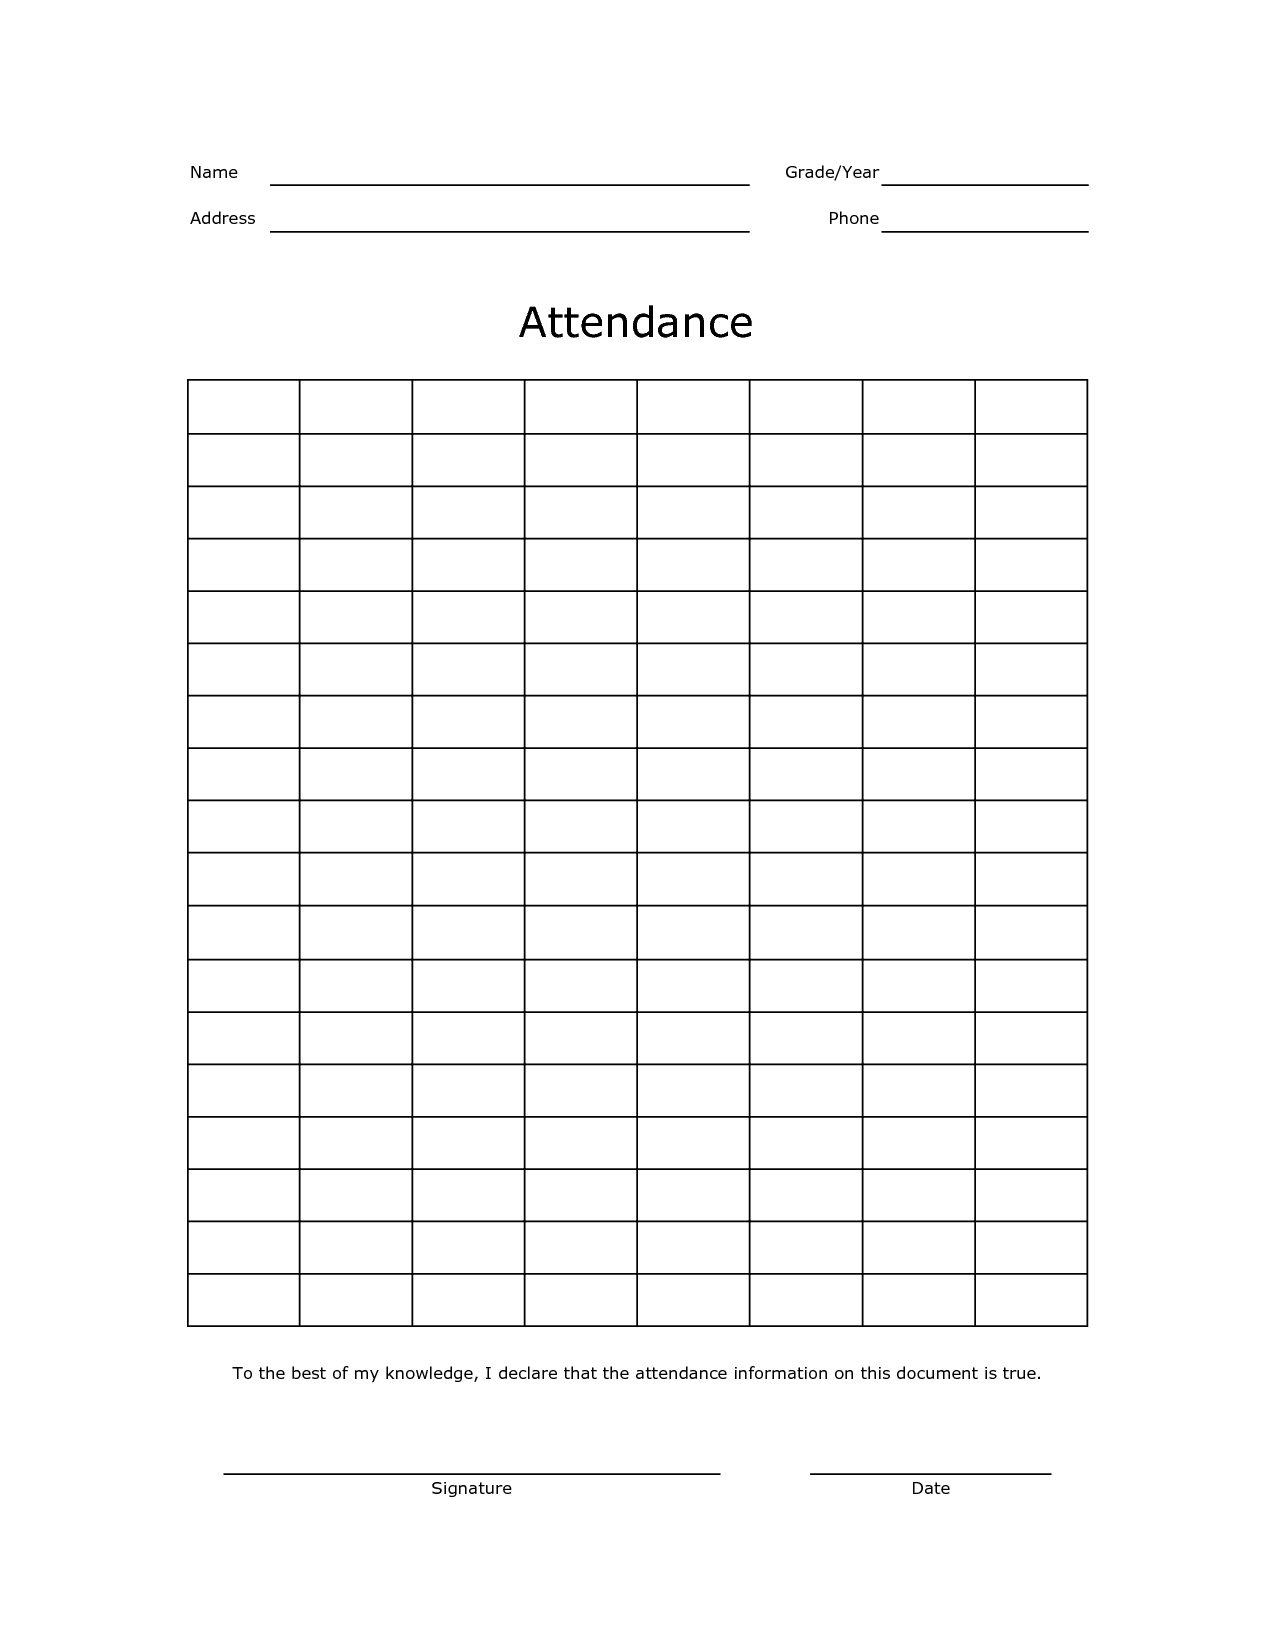 free printable attendance record school attendance sheets event